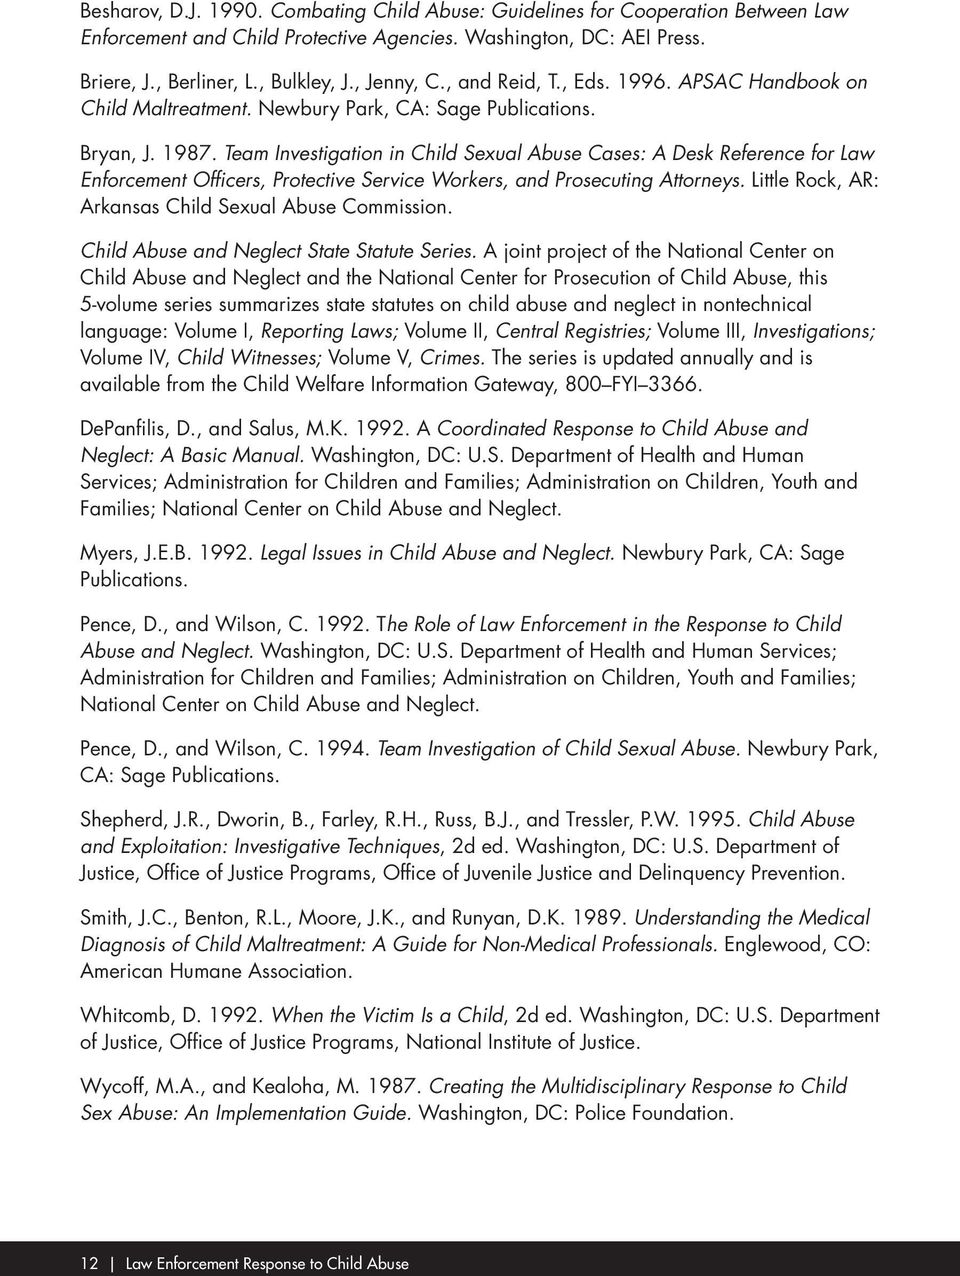 Team Investigation in Child Sexual Abuse Cases: A Desk Reference for Law Enforcement Officers, Protective Service Workers, and Prosecuting Attorneys.